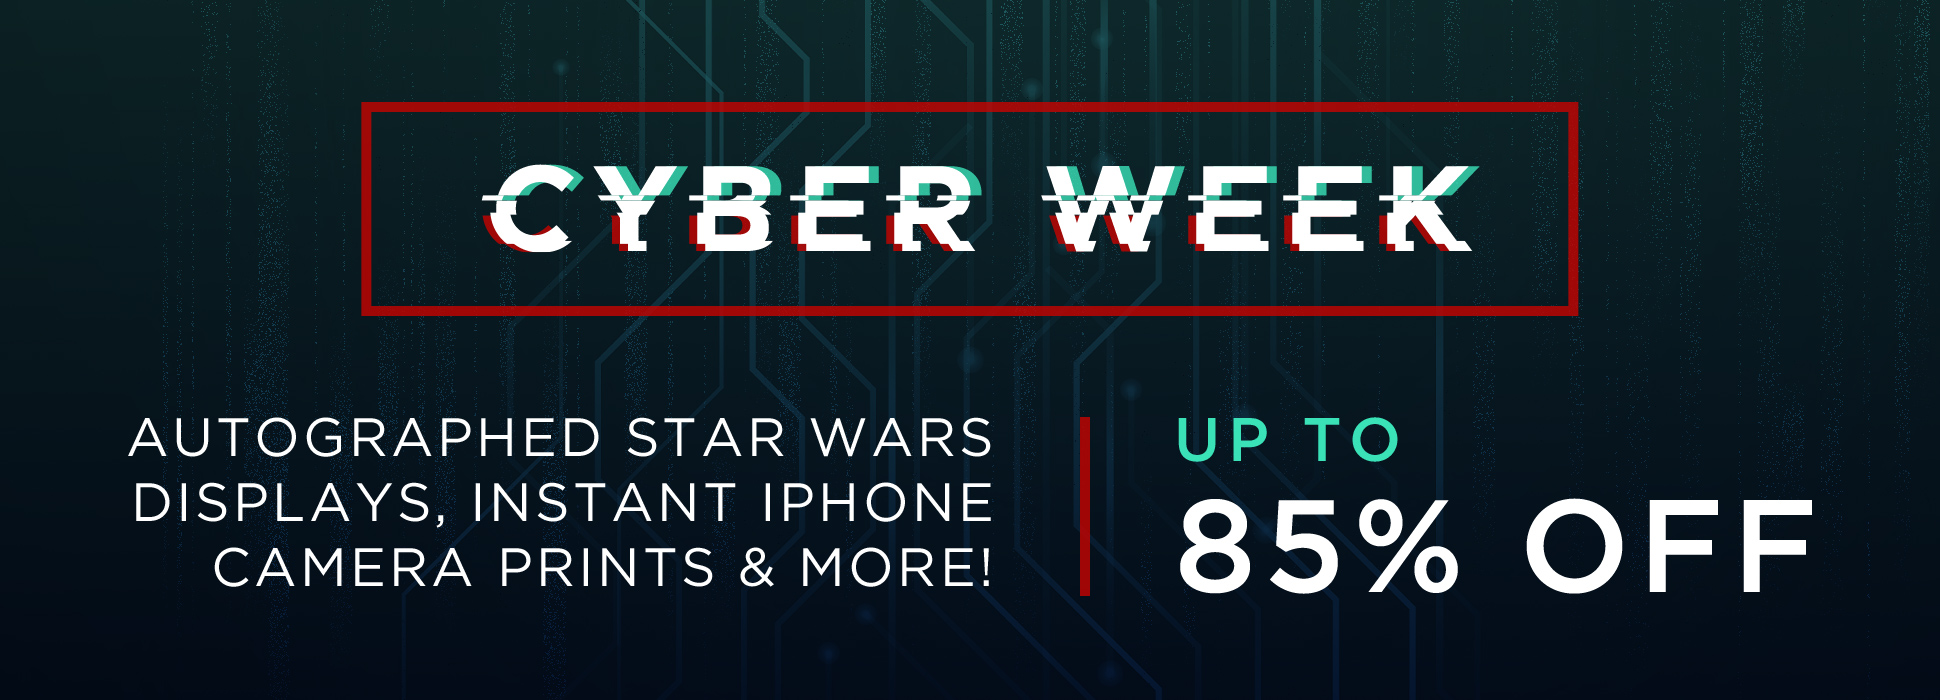 Cyber Week Day 3 (Web Banner)